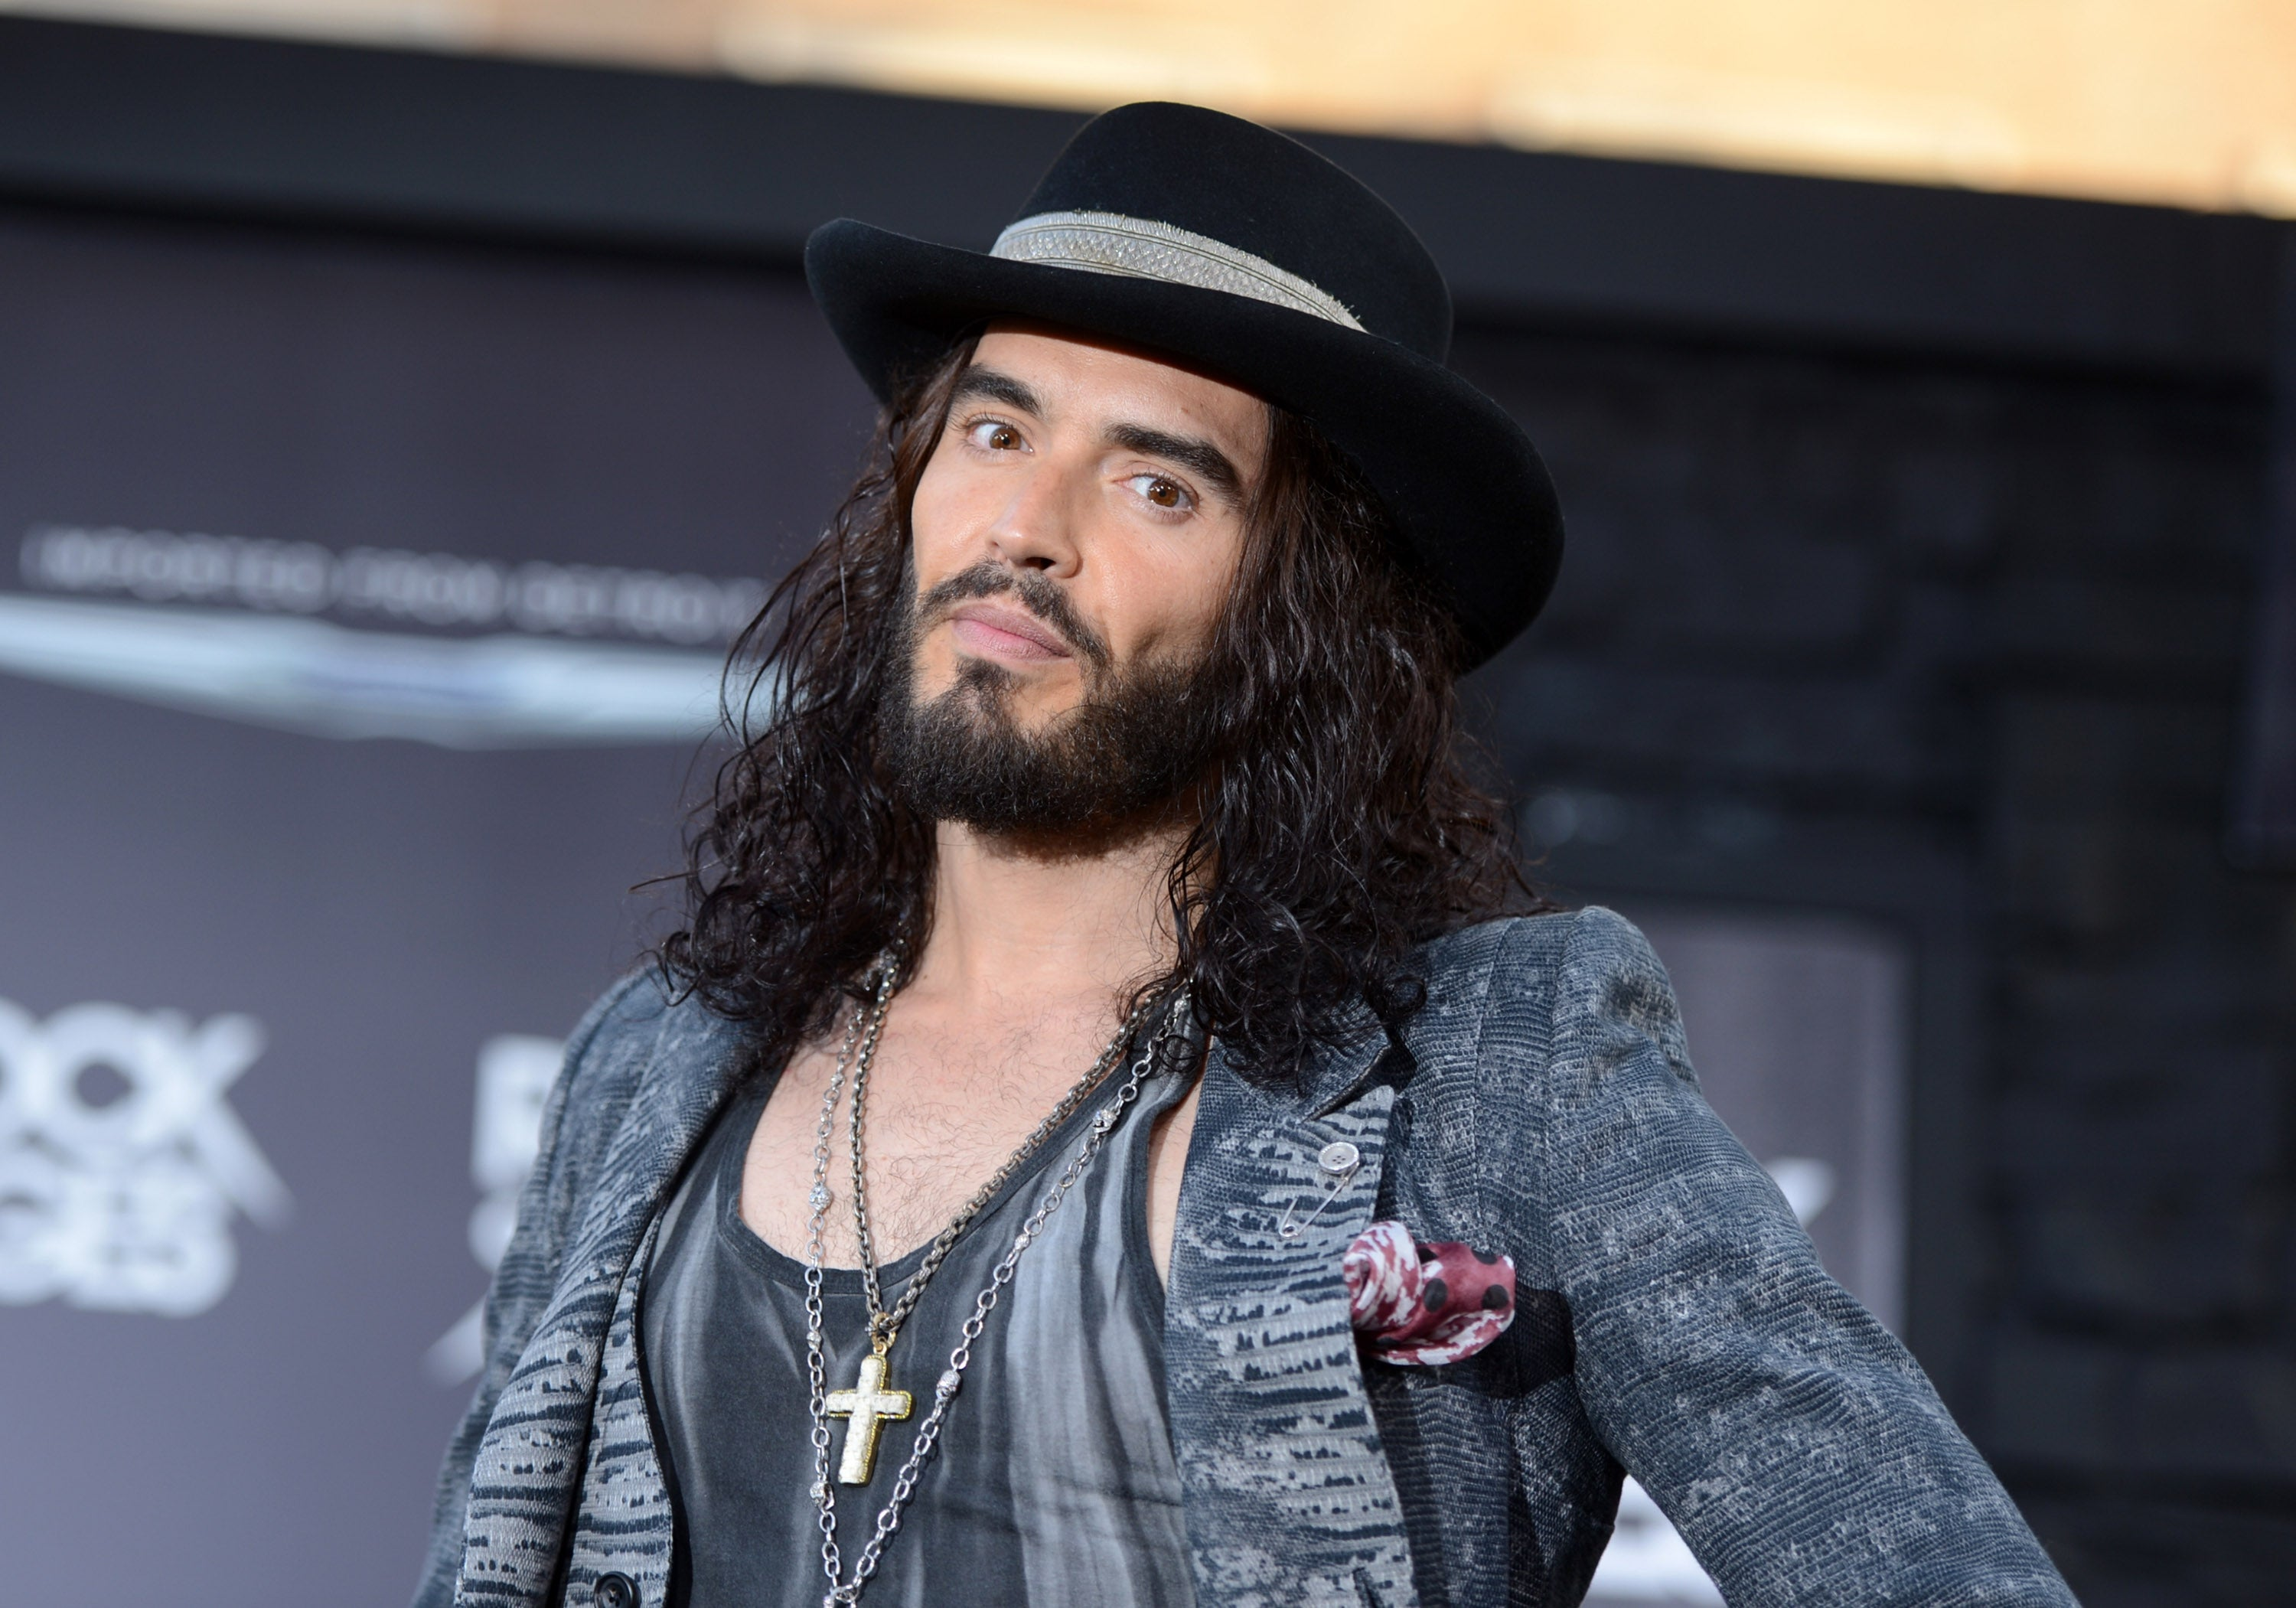 russell brand snlrussell brand height, russell brand laura gallacher, russell brand stand up, russell brand wife, russell brand net worth, russell brand wiki, russell brand scandalous, russell brand book, russell brand snl, russell brand show, russell brand movies, russell brand podcast, russell brand contact, russell brand julien blanc, russell brand jimmy fallon, russell brand nationality, russell brand my booky wook, russell brand tattoos, russell brand films, russell brand accent